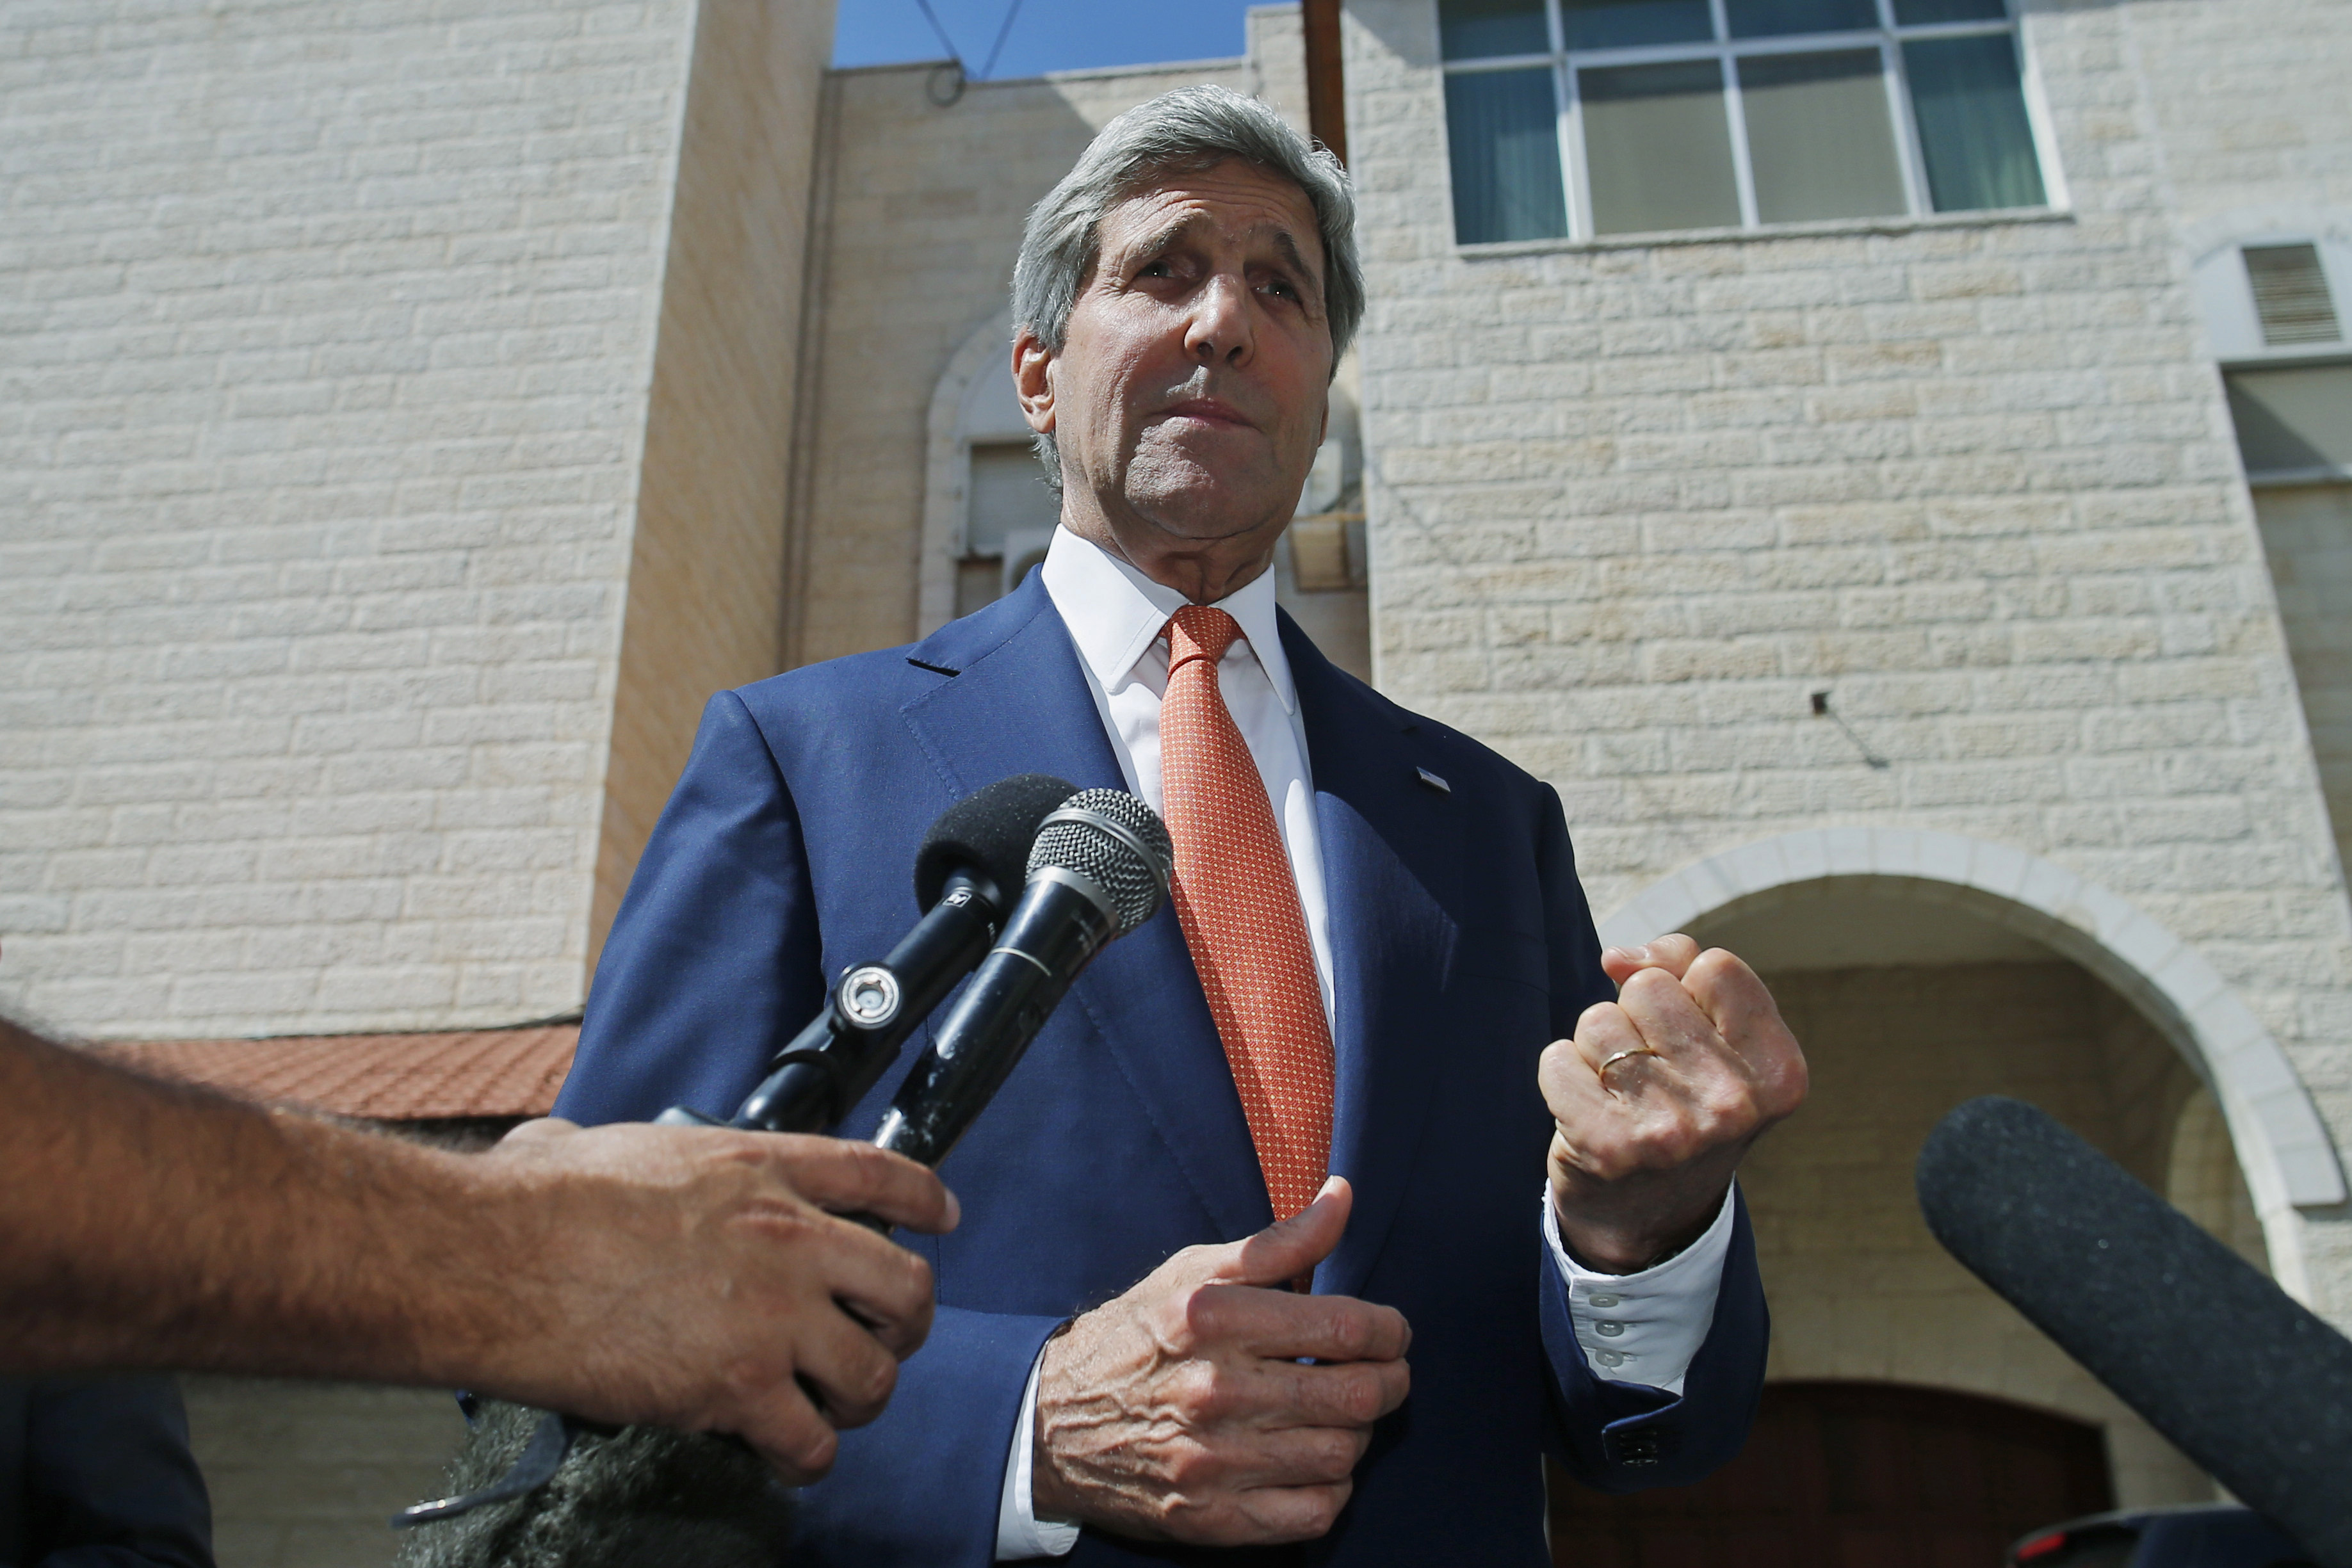 U.S. Secretary of State John Kerry speaks to reporters after meeting with Palestinian President Mahmoud Abbas in the West Bank city of Ramallah on July 23, 2014.